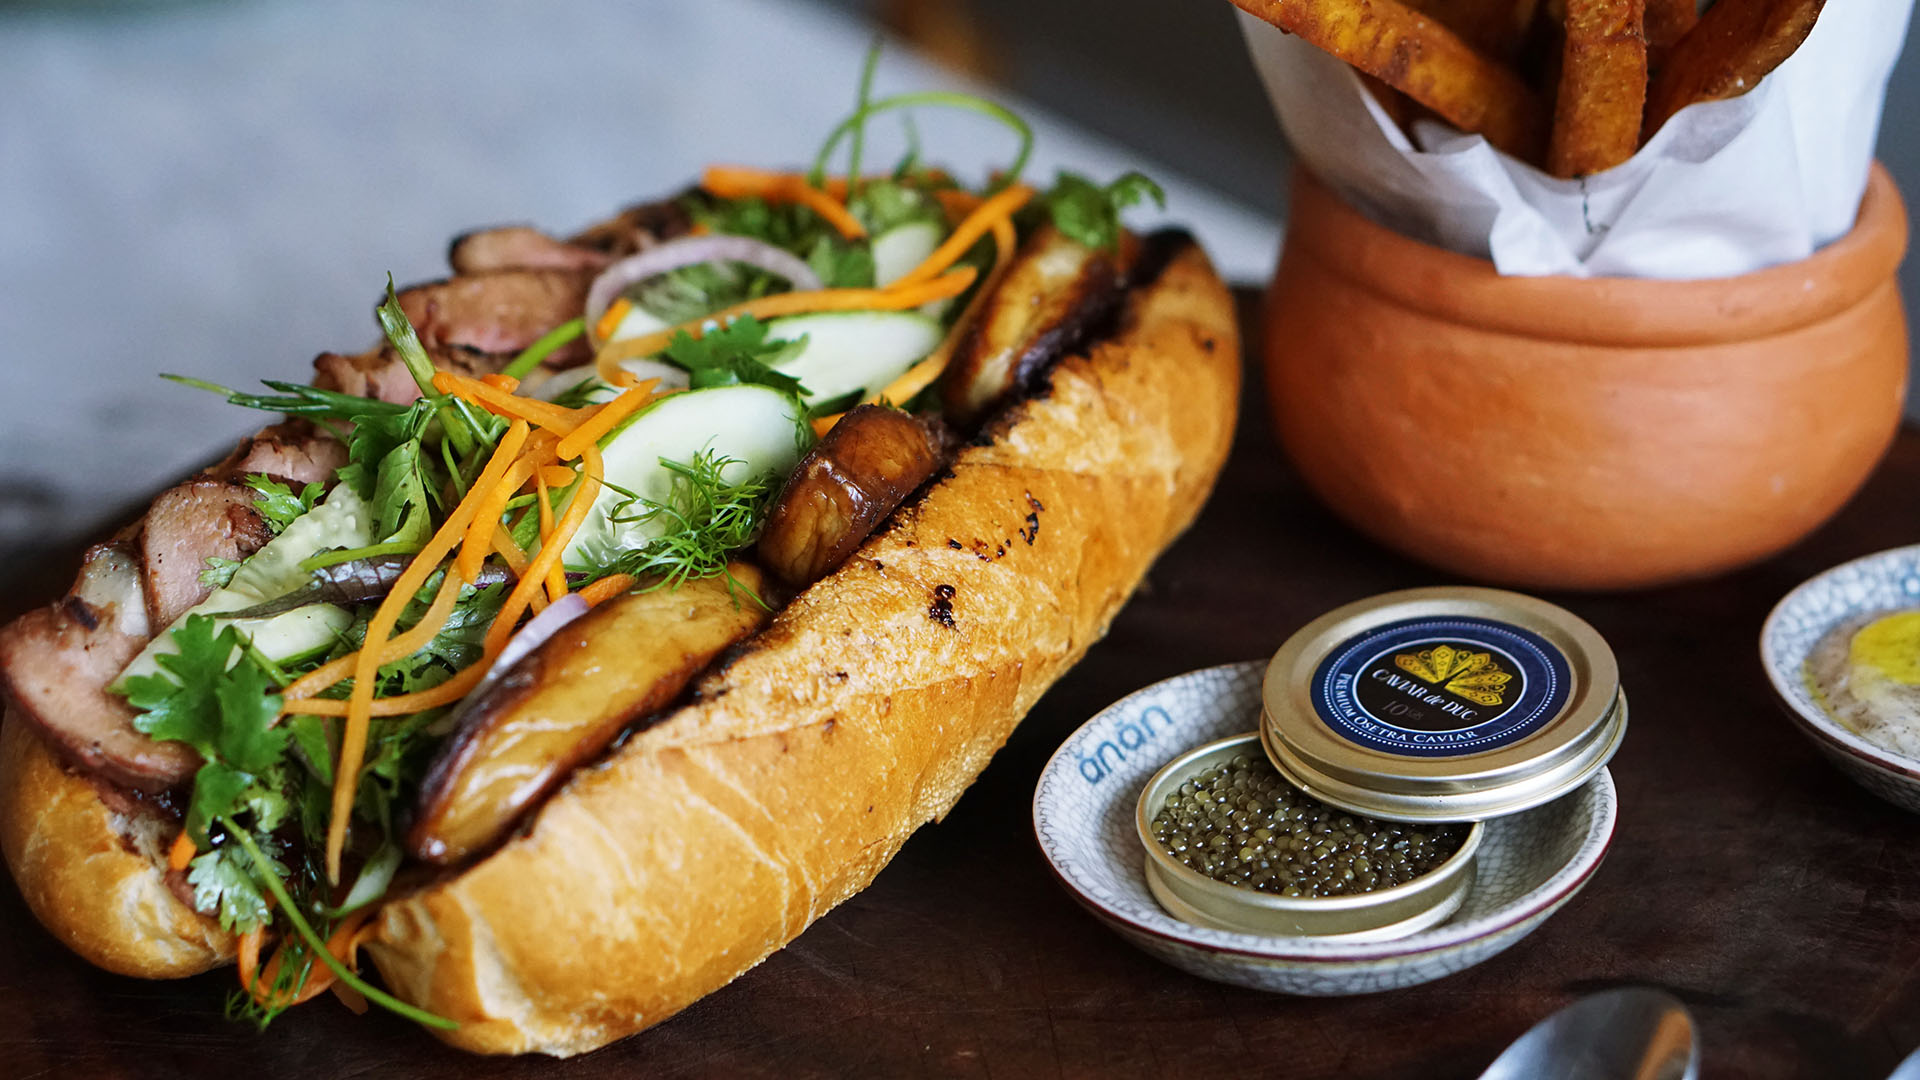 This acclaimed chef is selling $100 'banh mi,' 'pho' in Vietnam